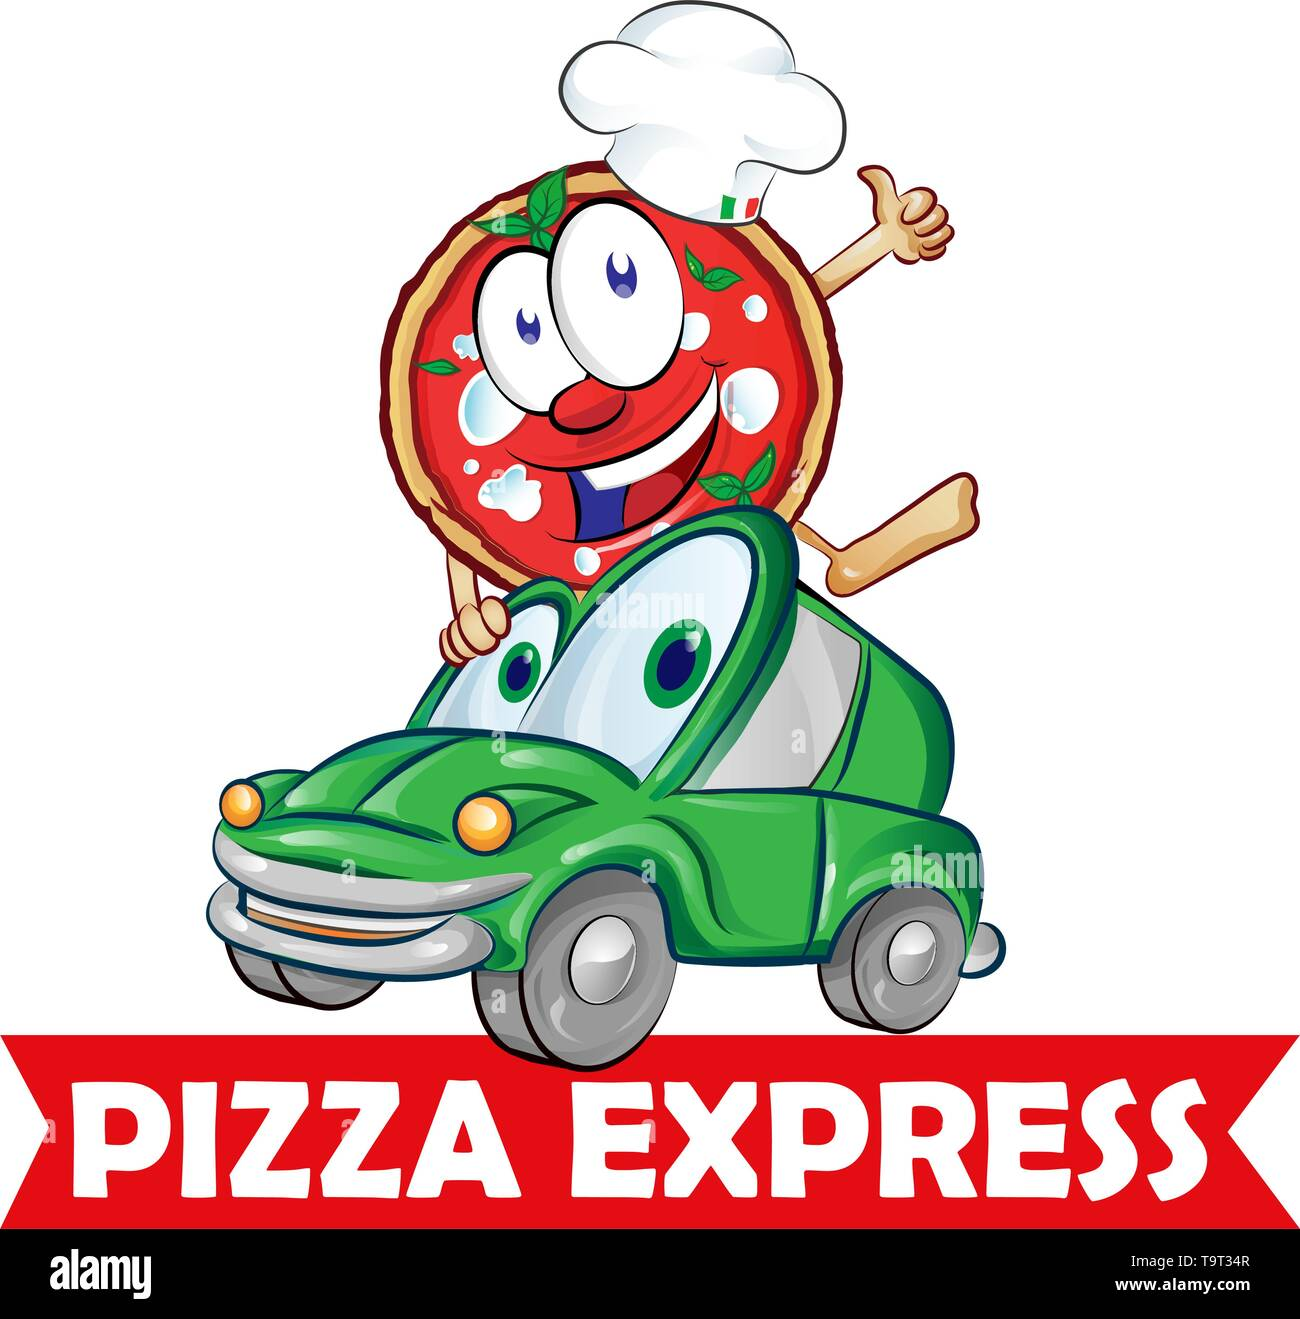 Pizza Delivery Car Stock Photos Pizza Delivery Car Stock